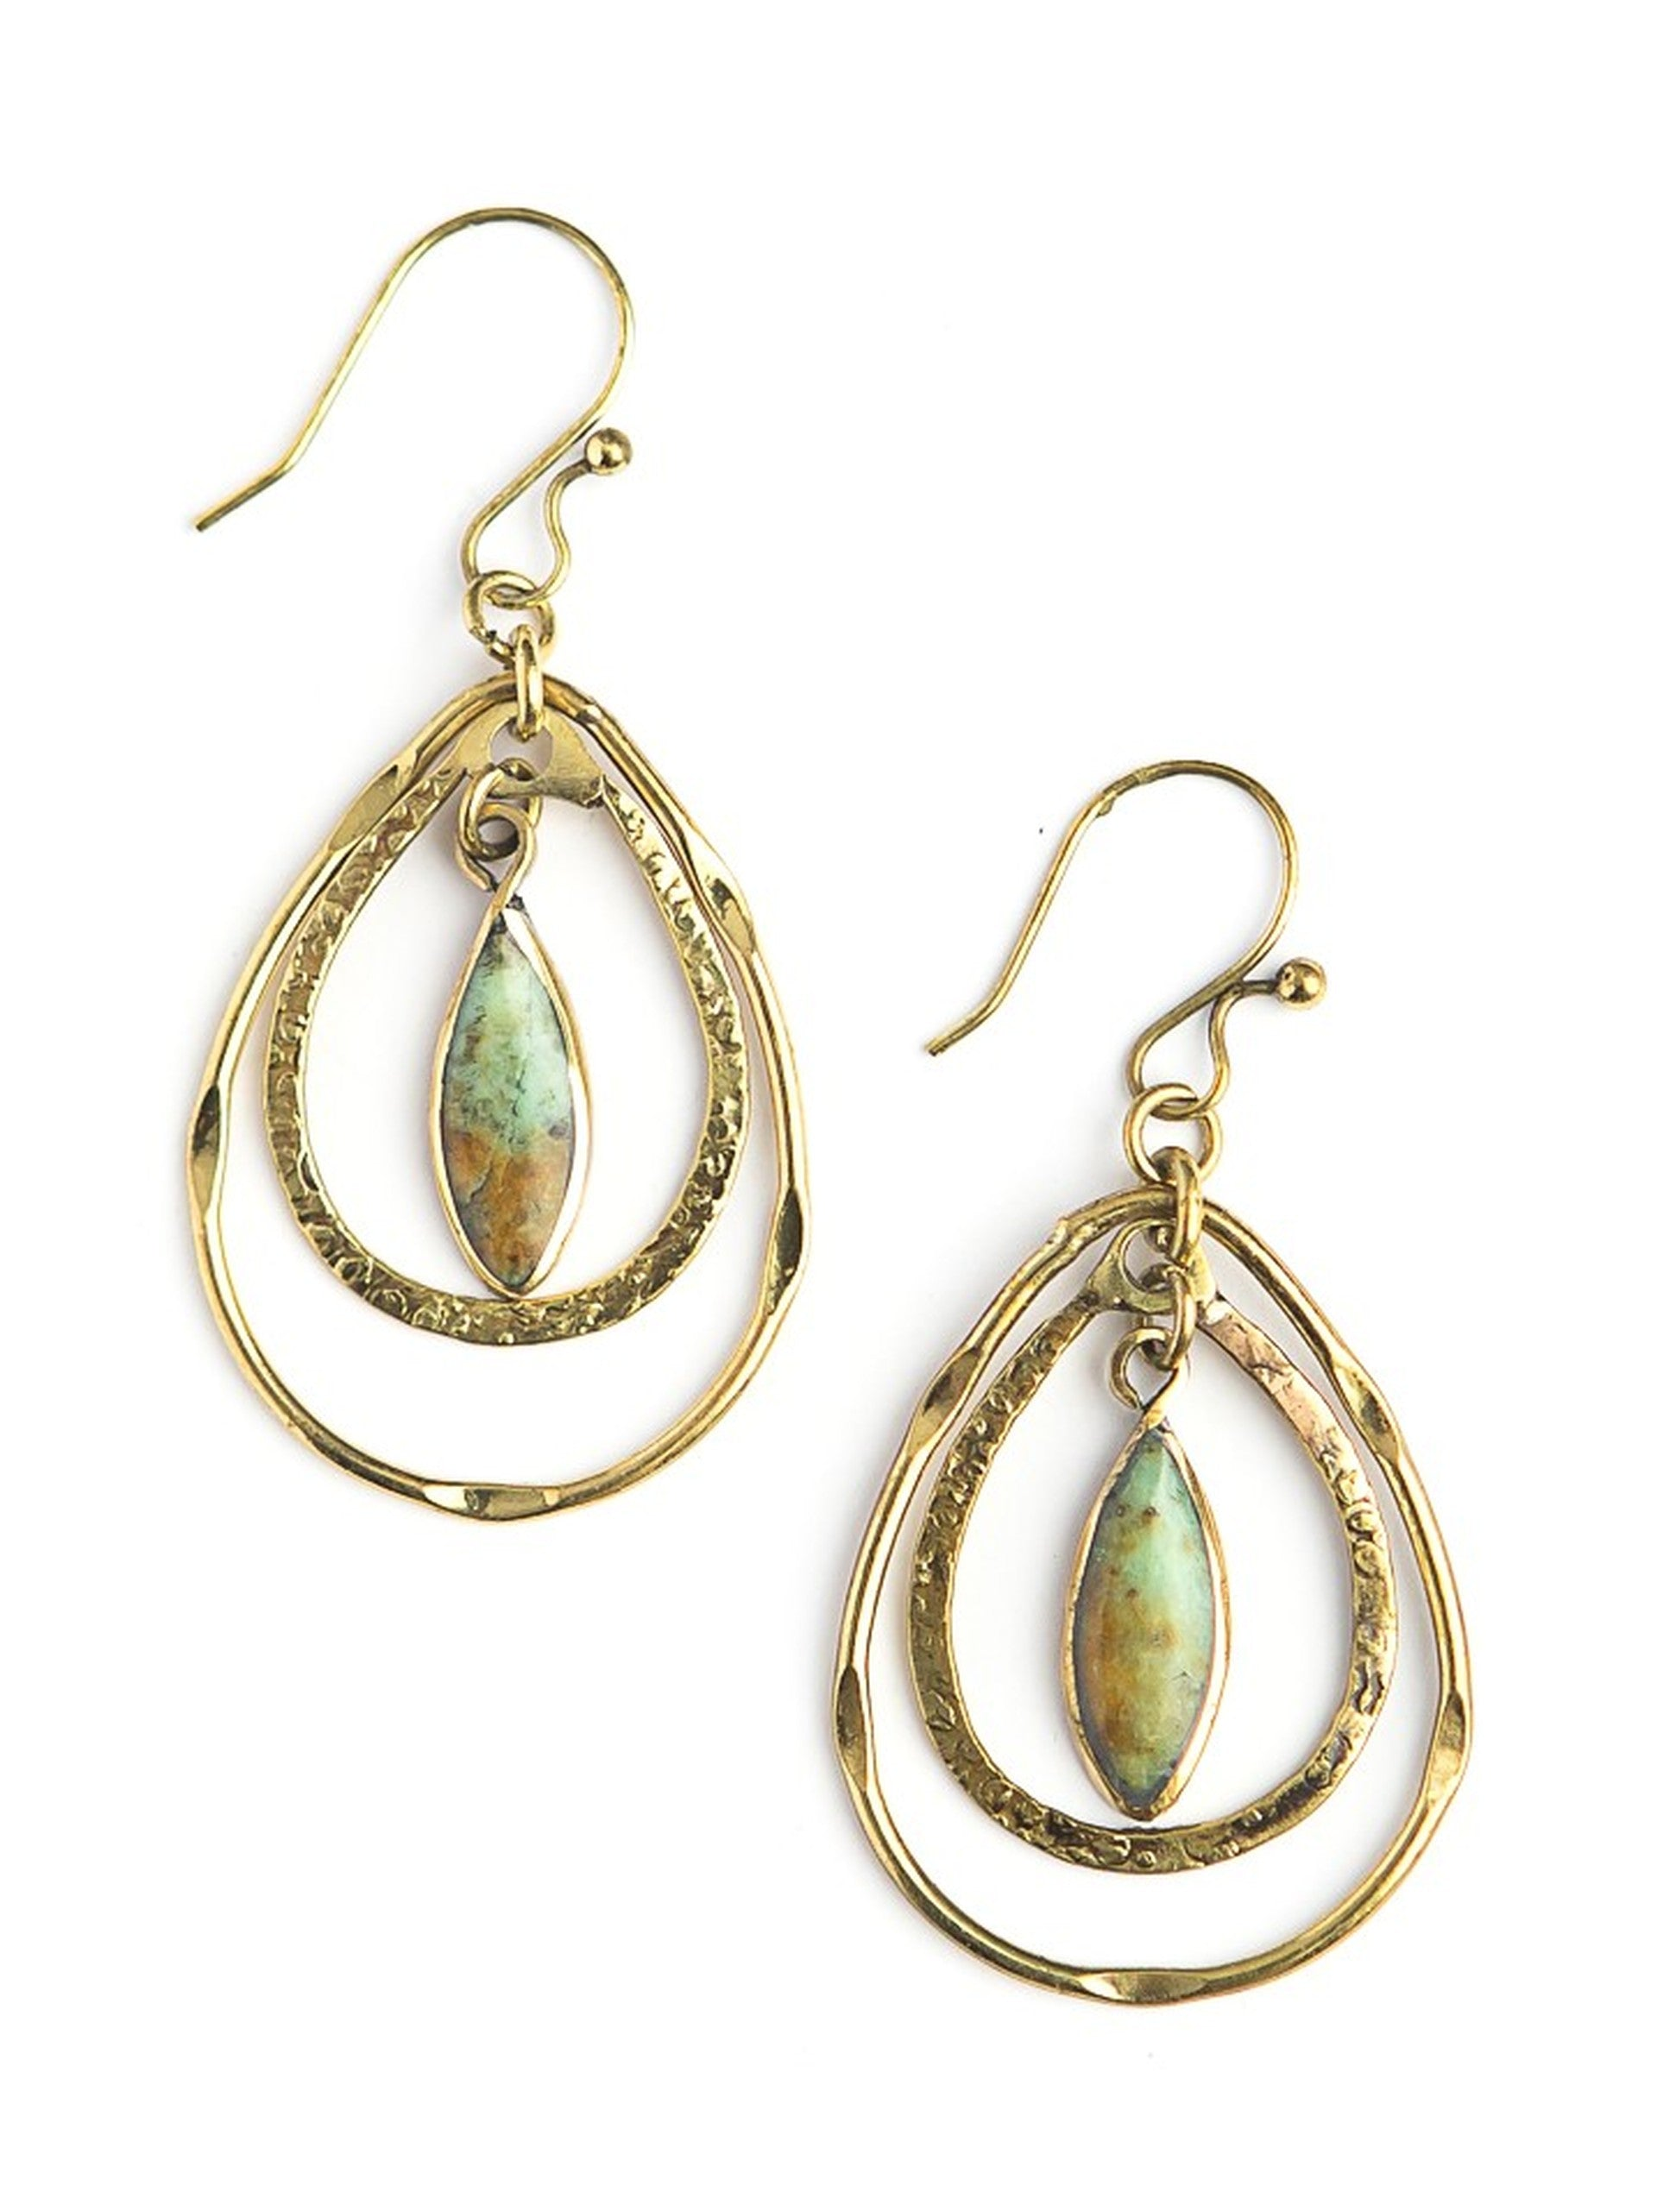 Adela Earrings - Small Things Fair Trade